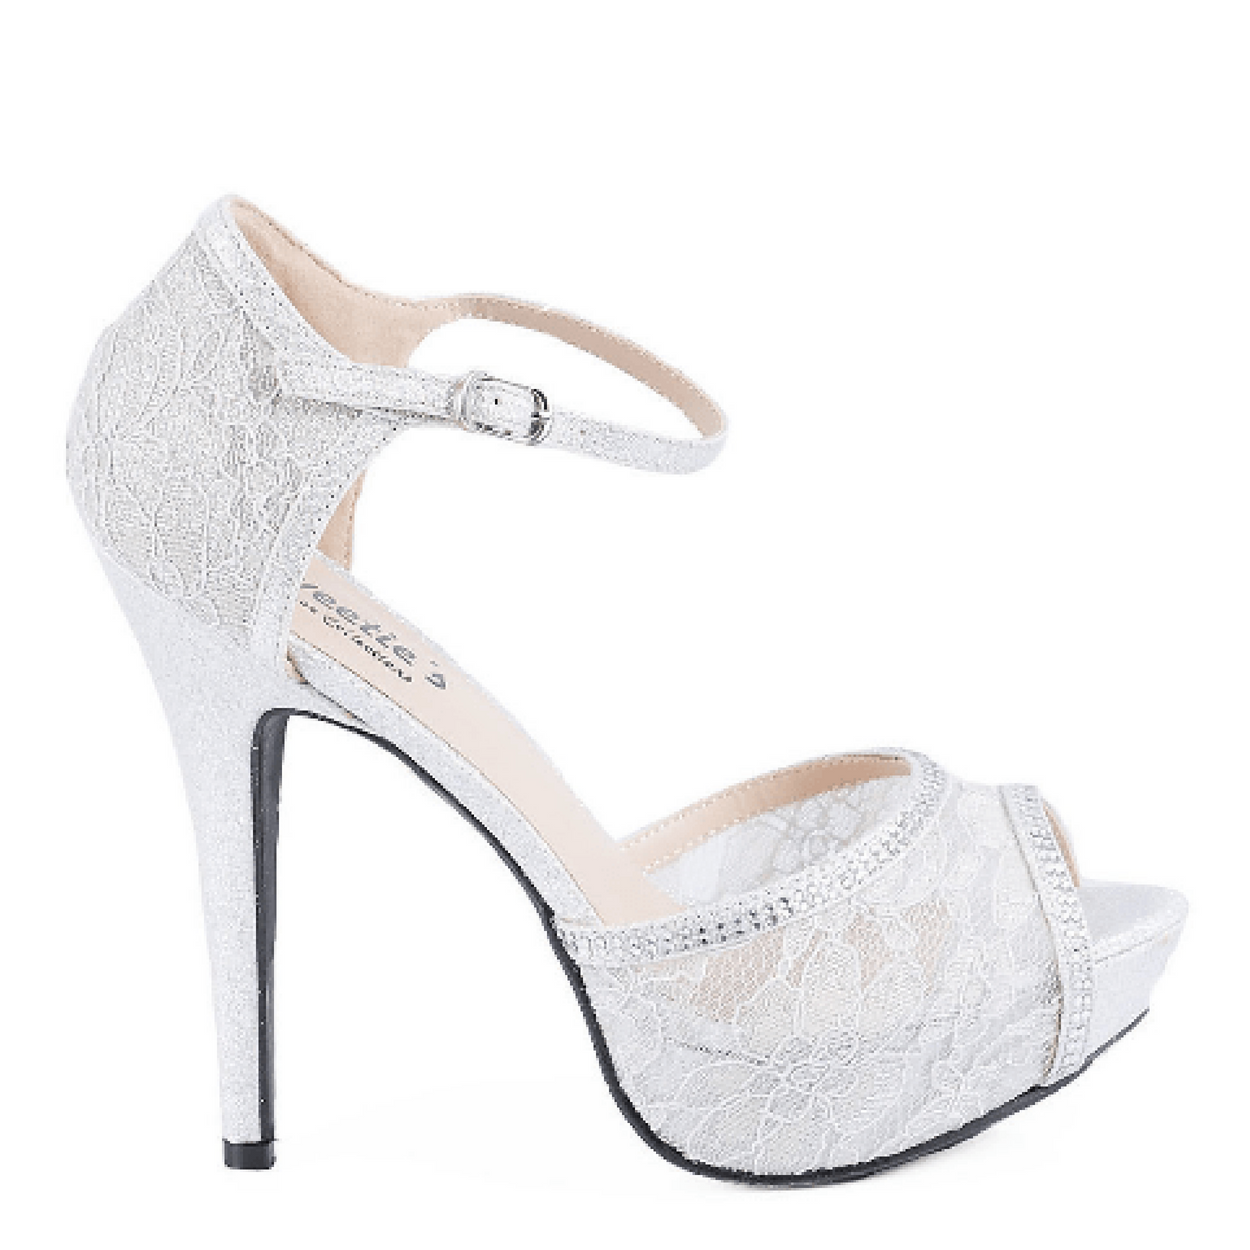 White Lace Sparkly High Heel – Rsvp